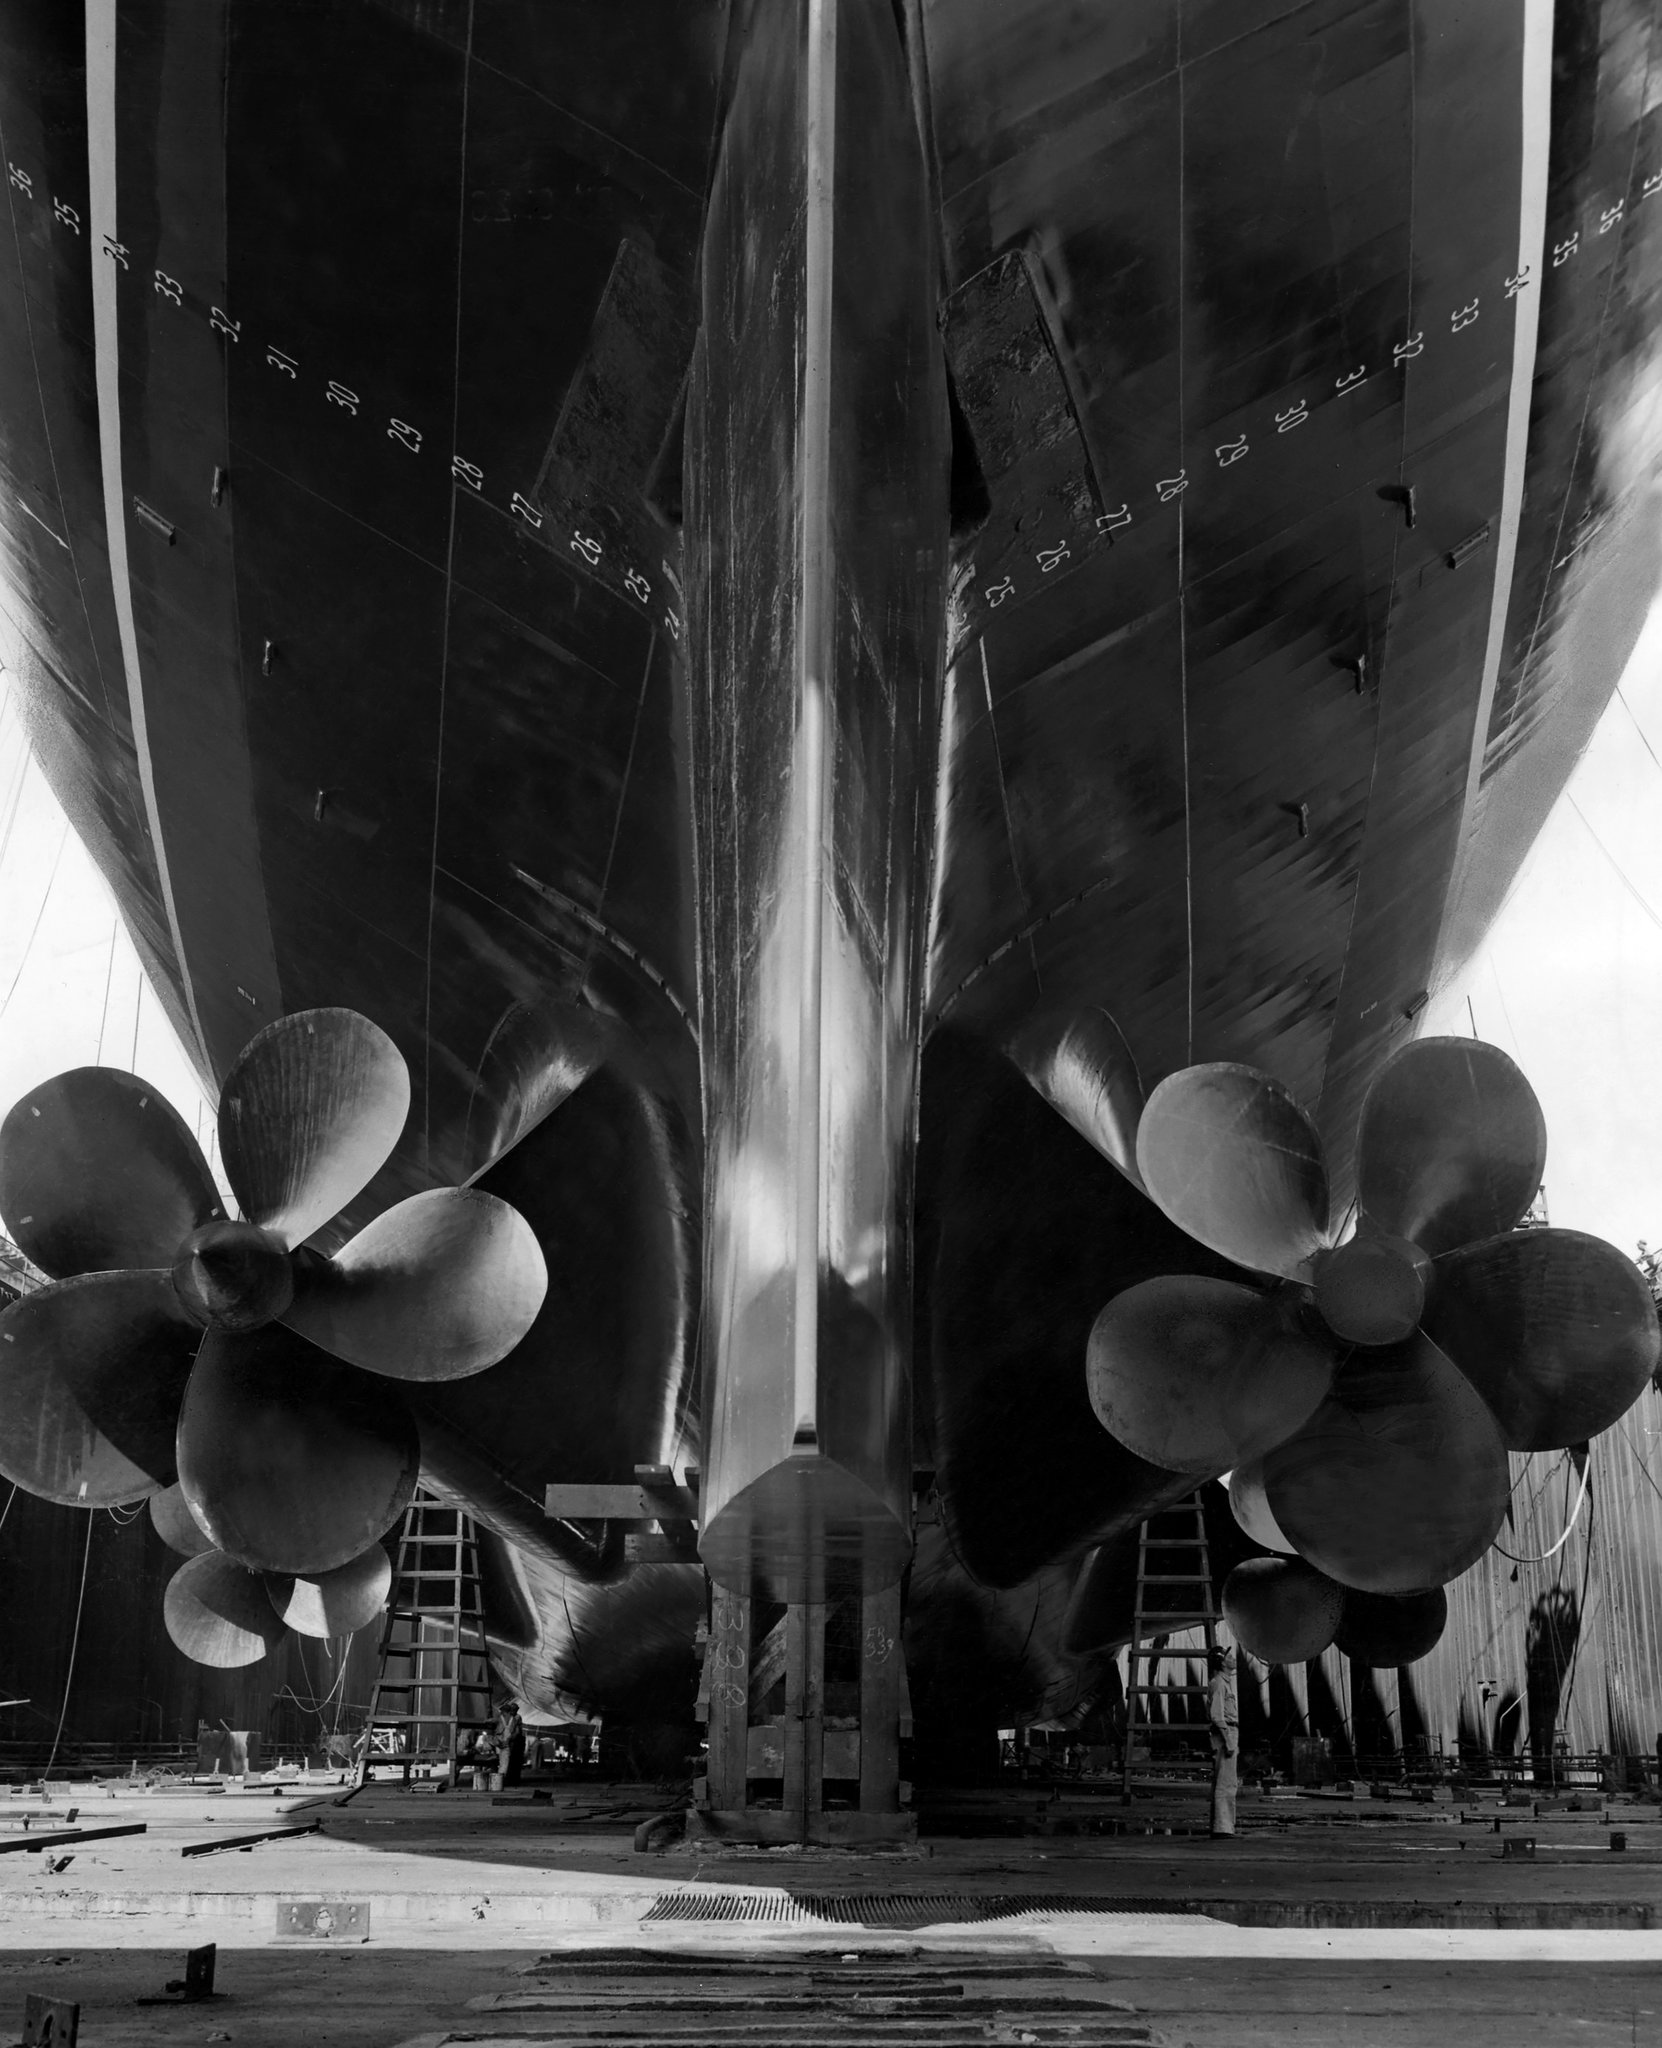 SS United States' powerful (formerly-top secret) powerplant, coupled with her light-weight superstructure contributed to her speed.